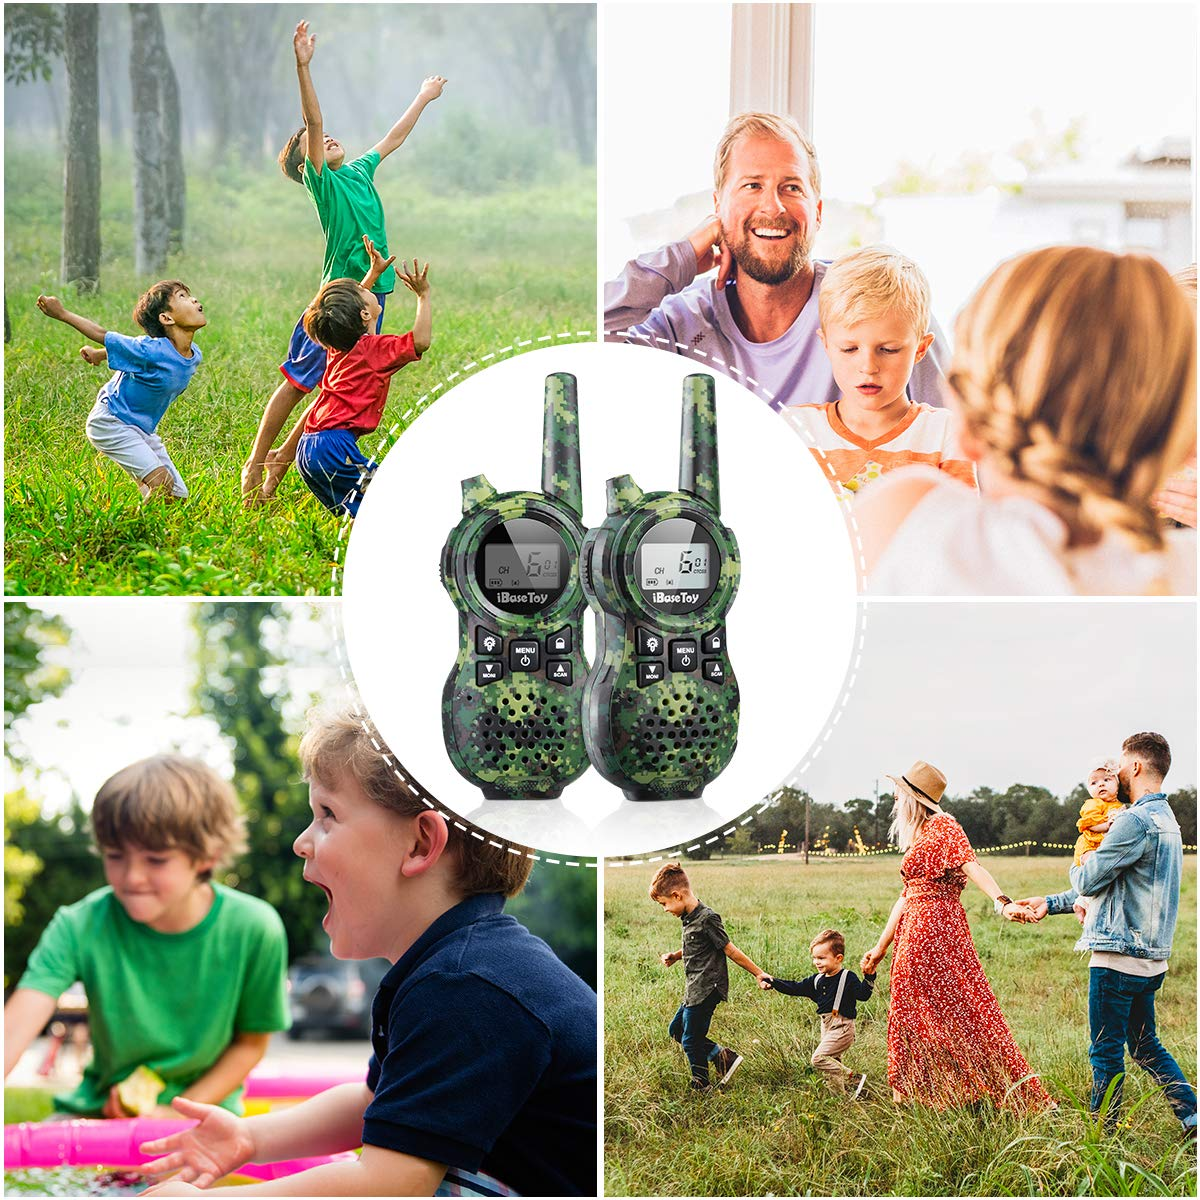 iBaseToy Walkie Talkies for Kids, Rechargeable Walkie Talkies with 22 Channels, 4-Miles Range Radio with Flashlight, LCD Screen and Charging line for Outdoor Adventures, Camping, Hiking - 2 Pack by iBaseToy (Image #6)